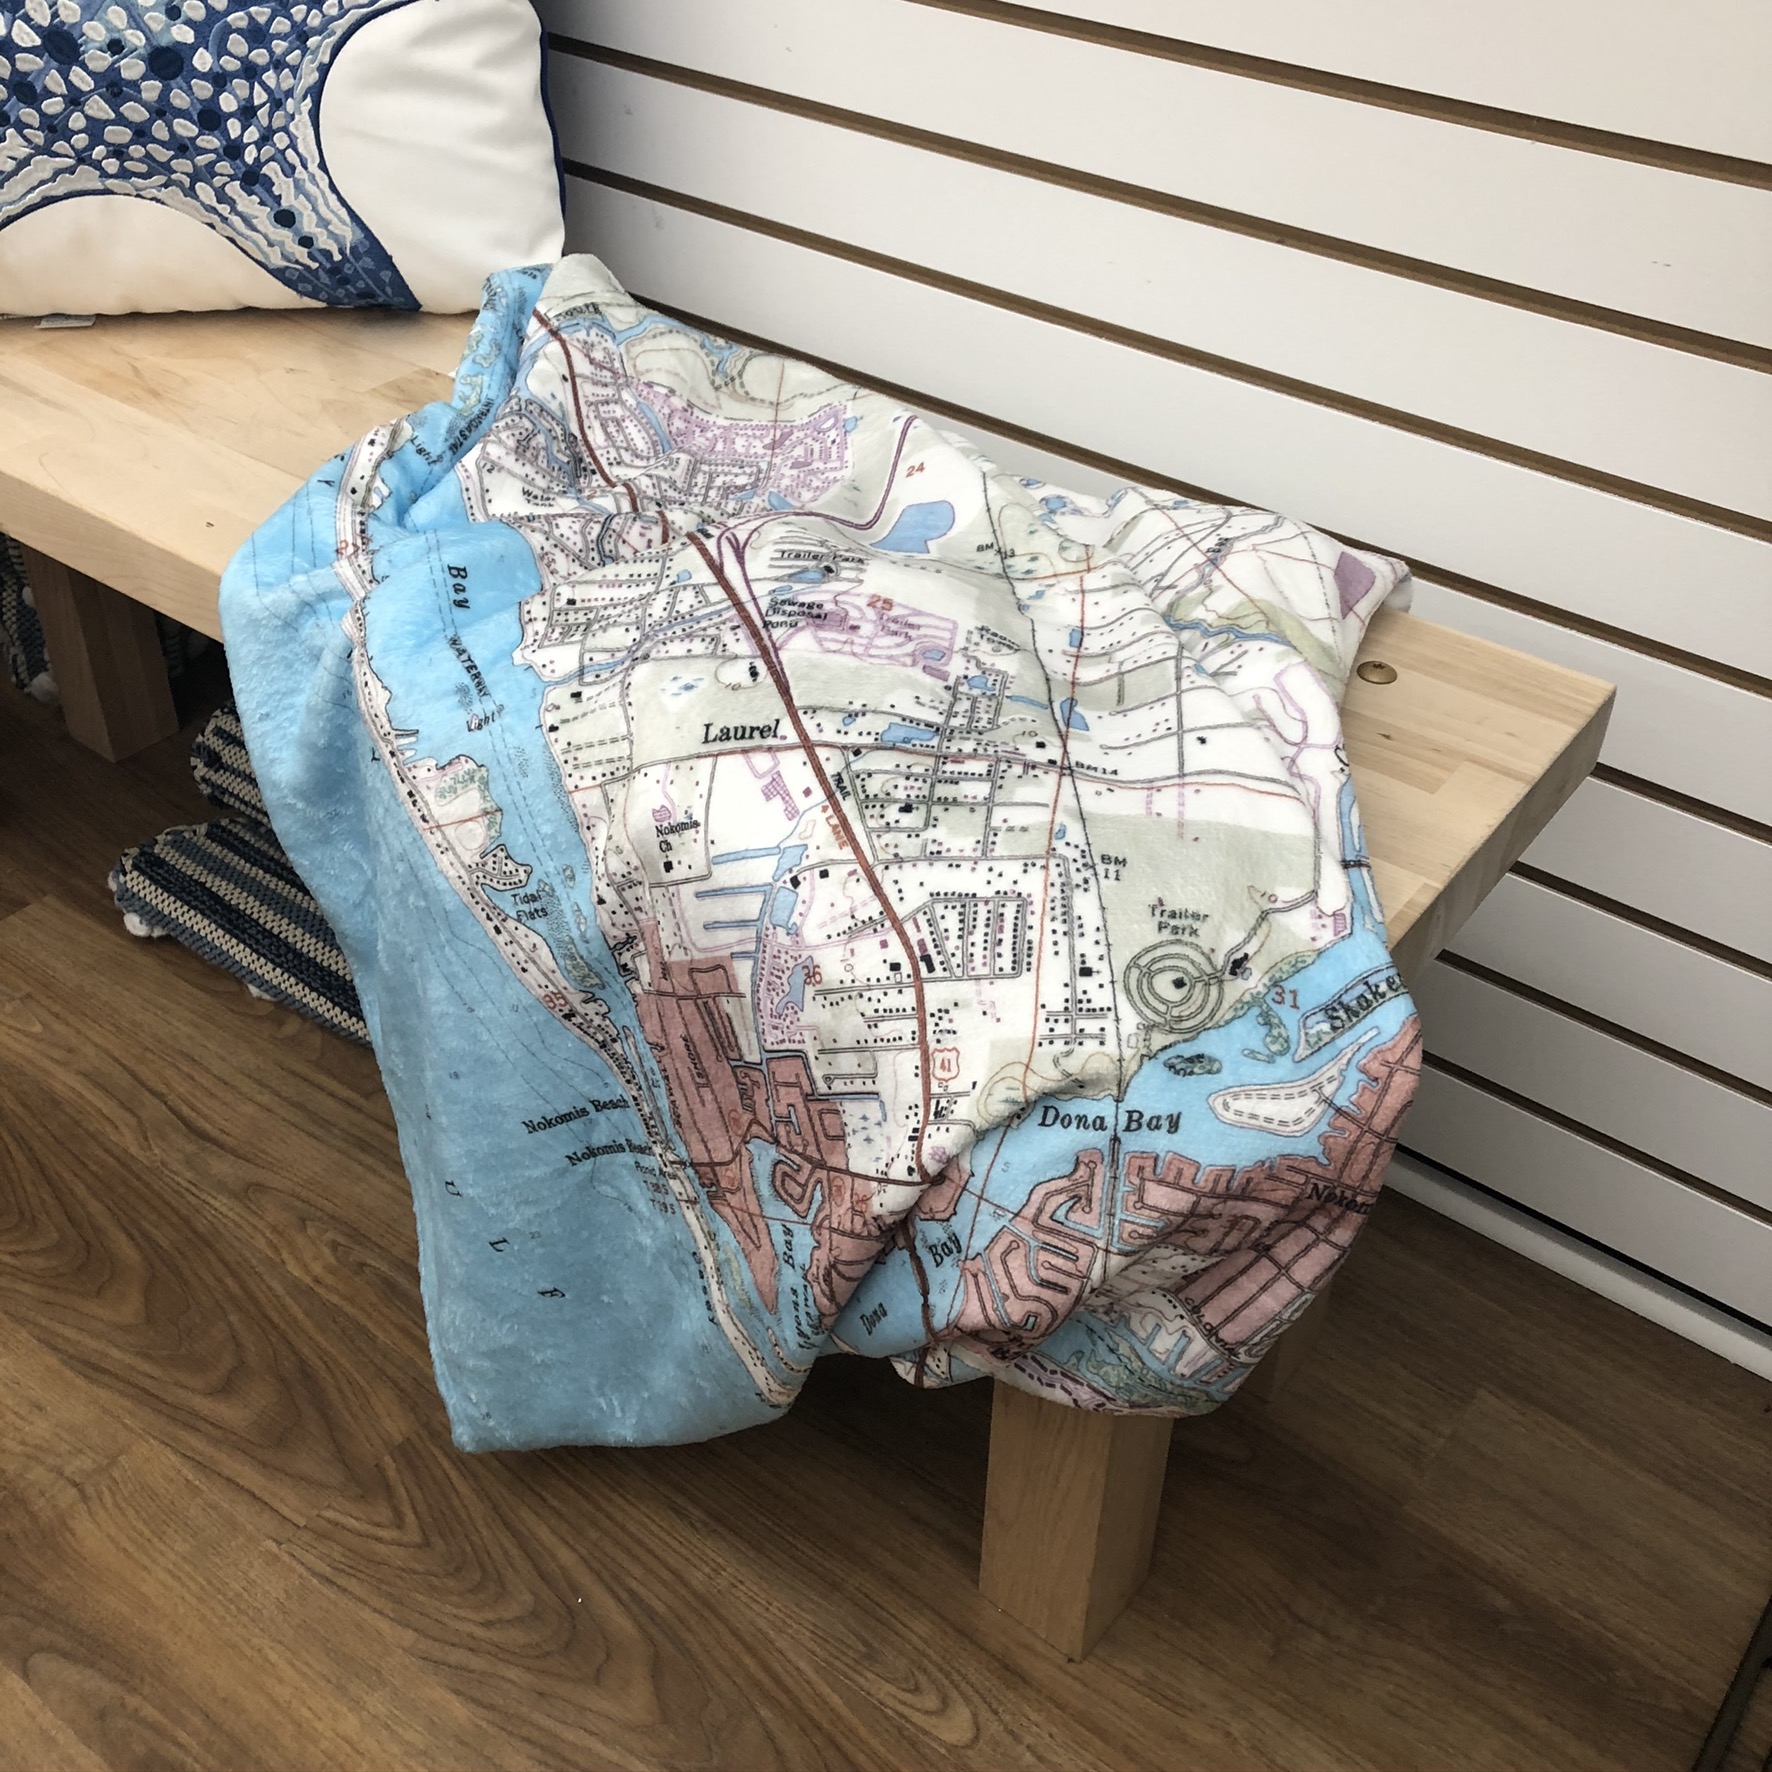 blanket with map of Venice Florida lying on on bench